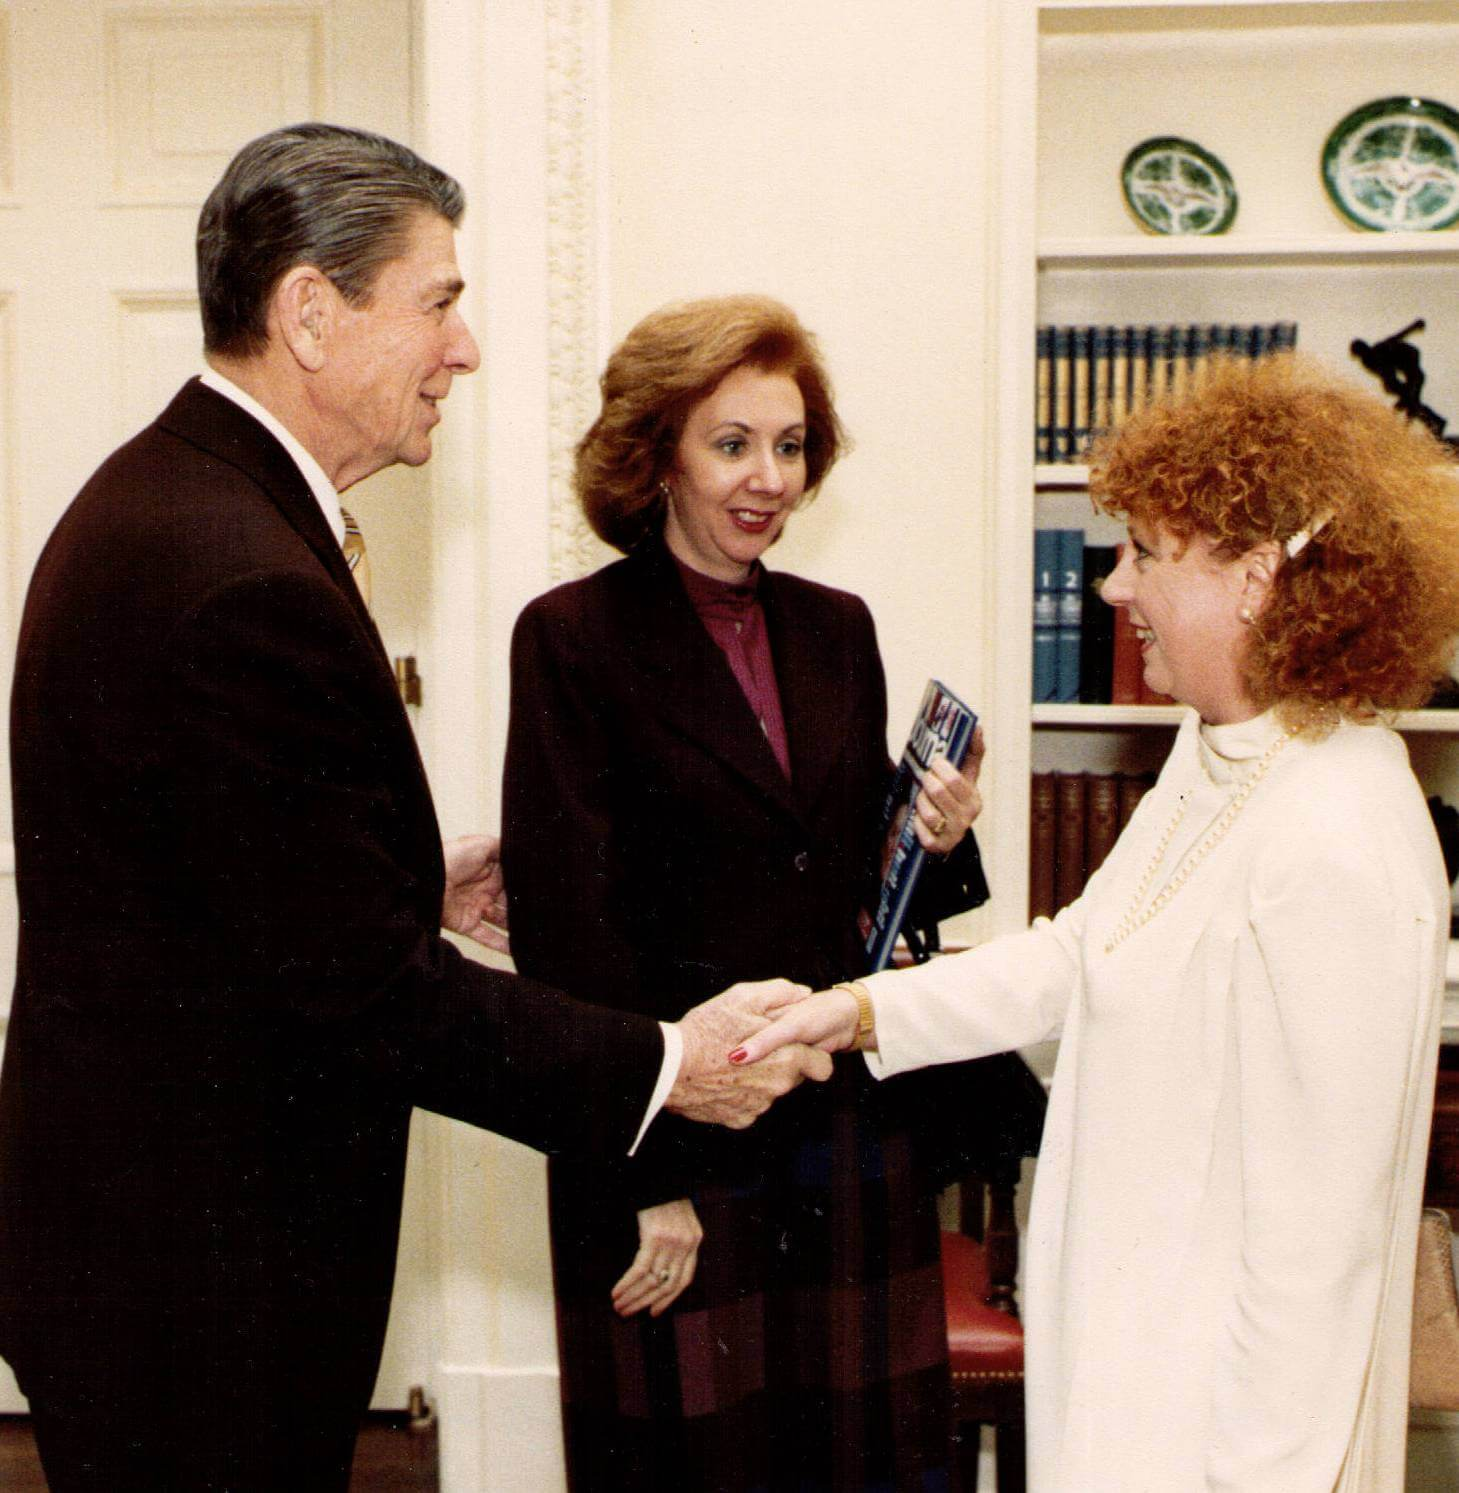 PHOTO: Jan being honored at the White House.